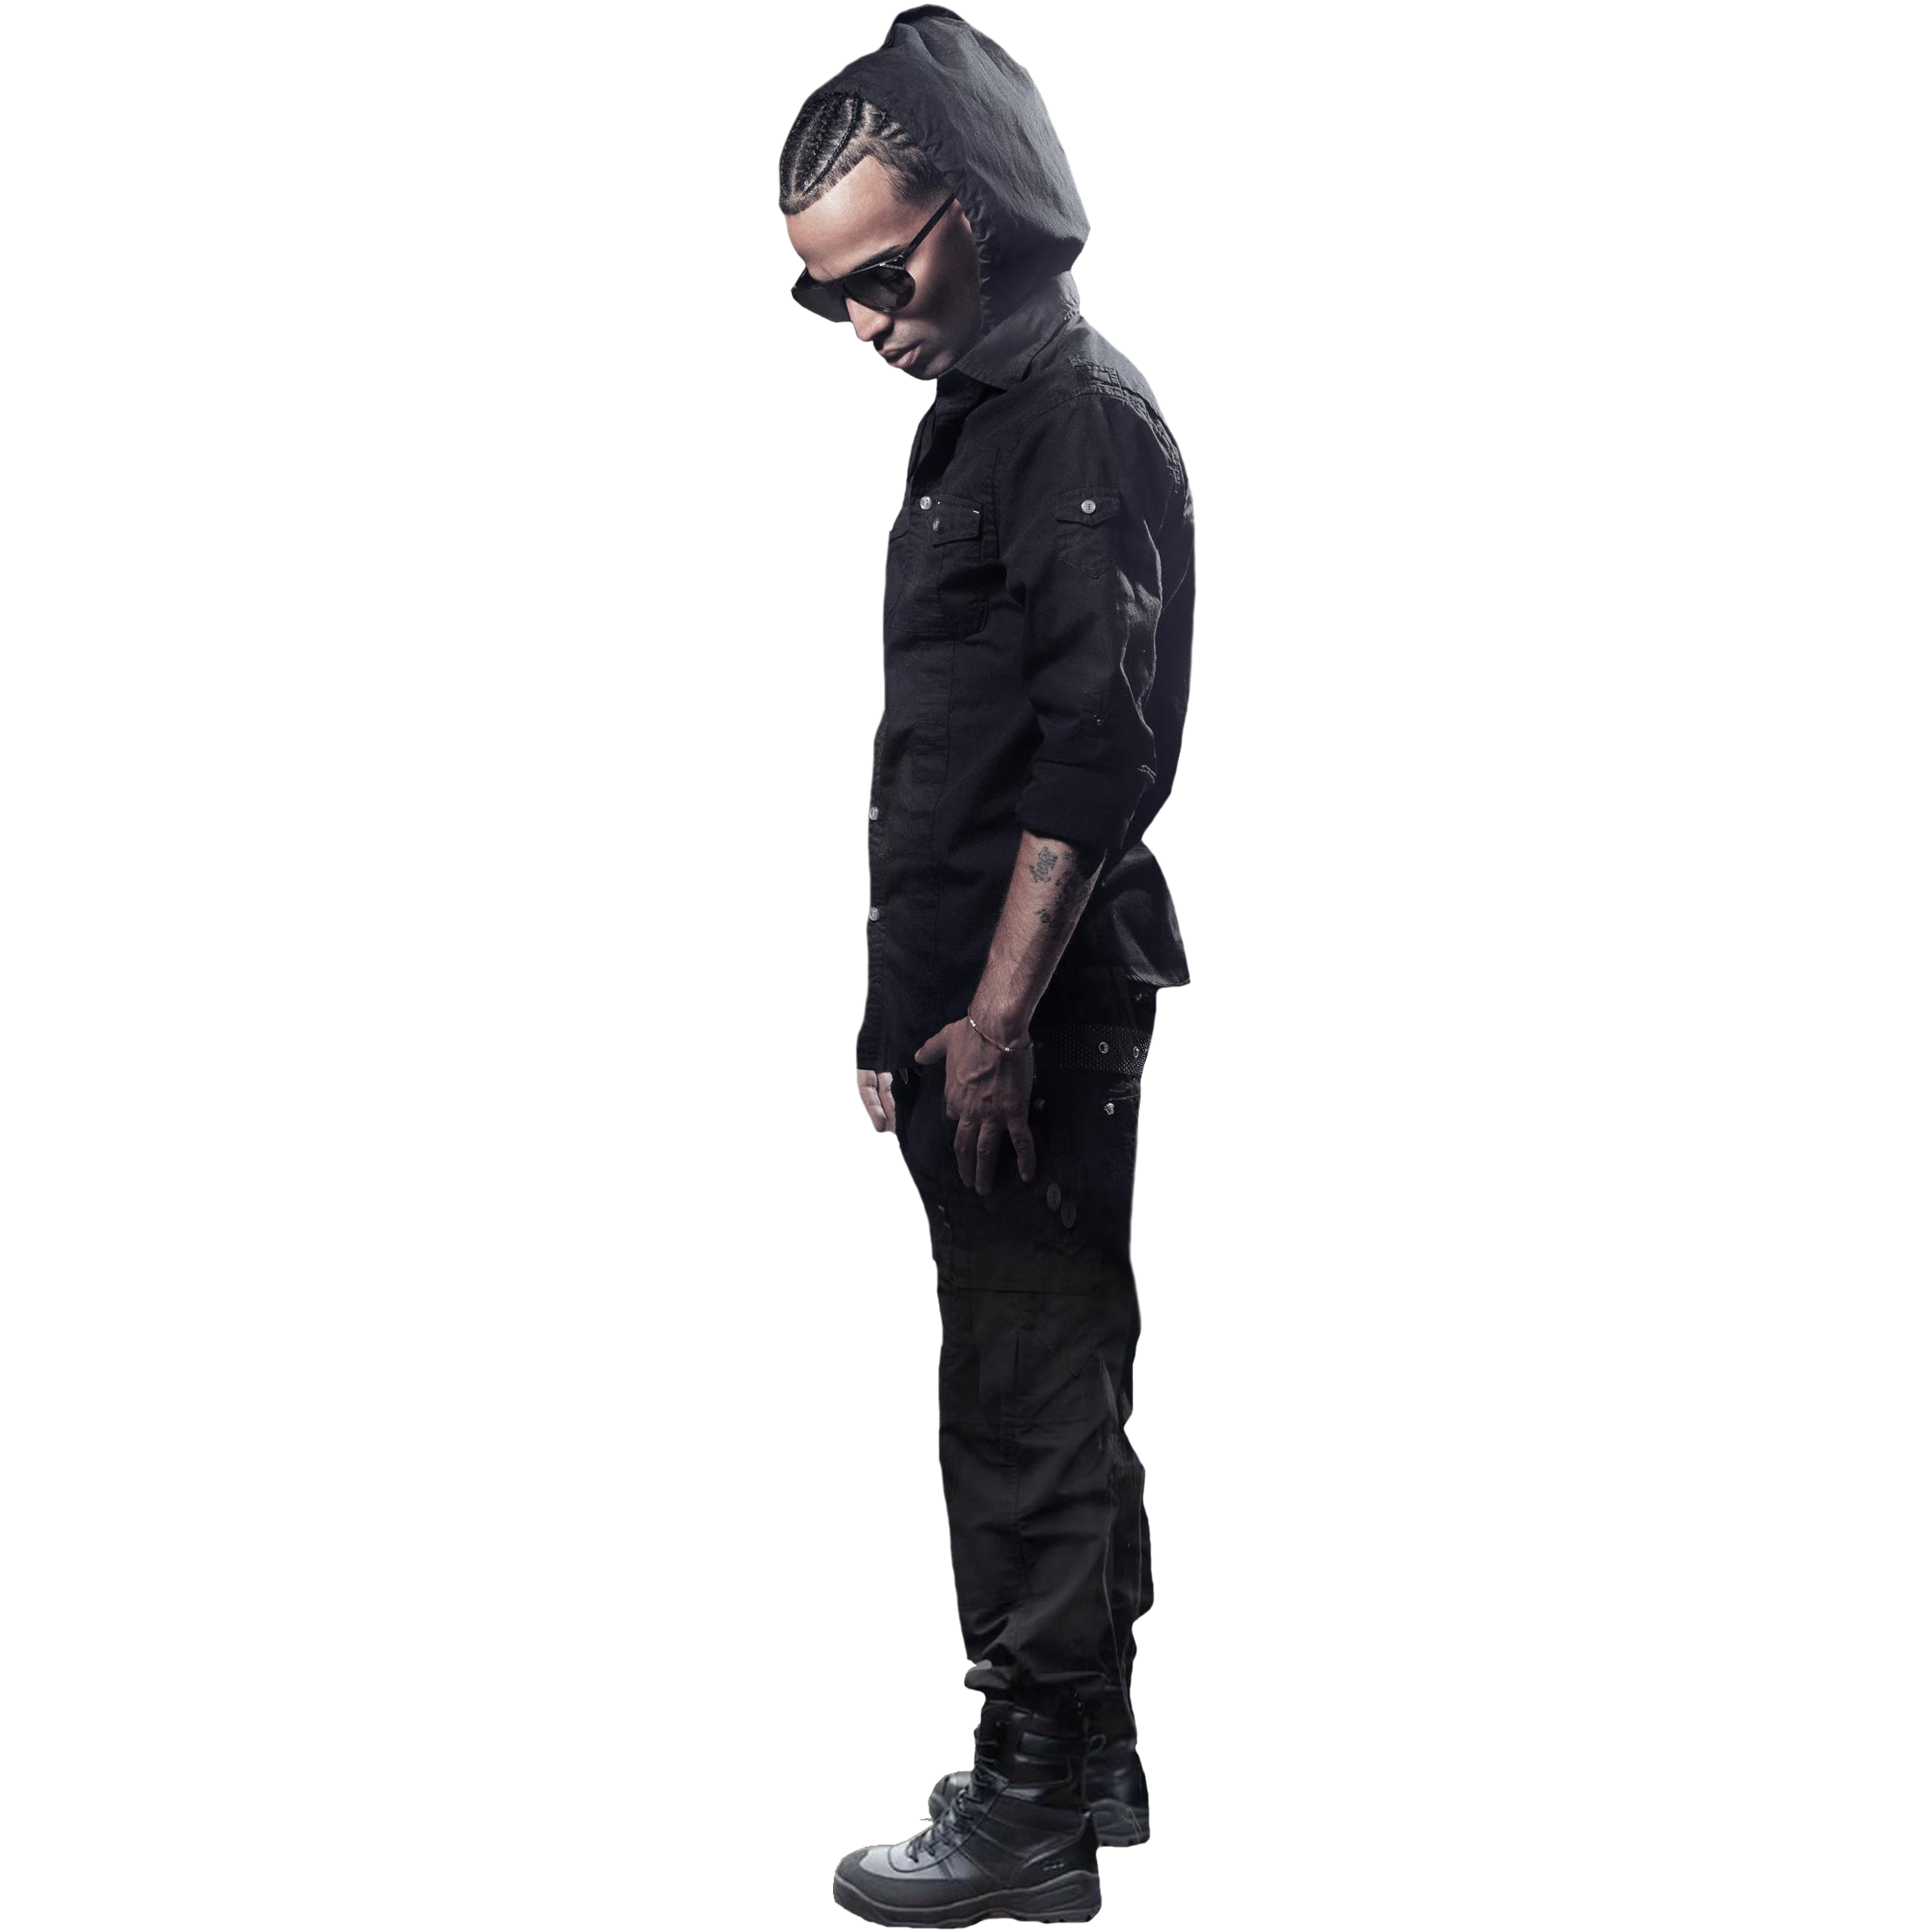 Arcangel png 5 » PNG Image.